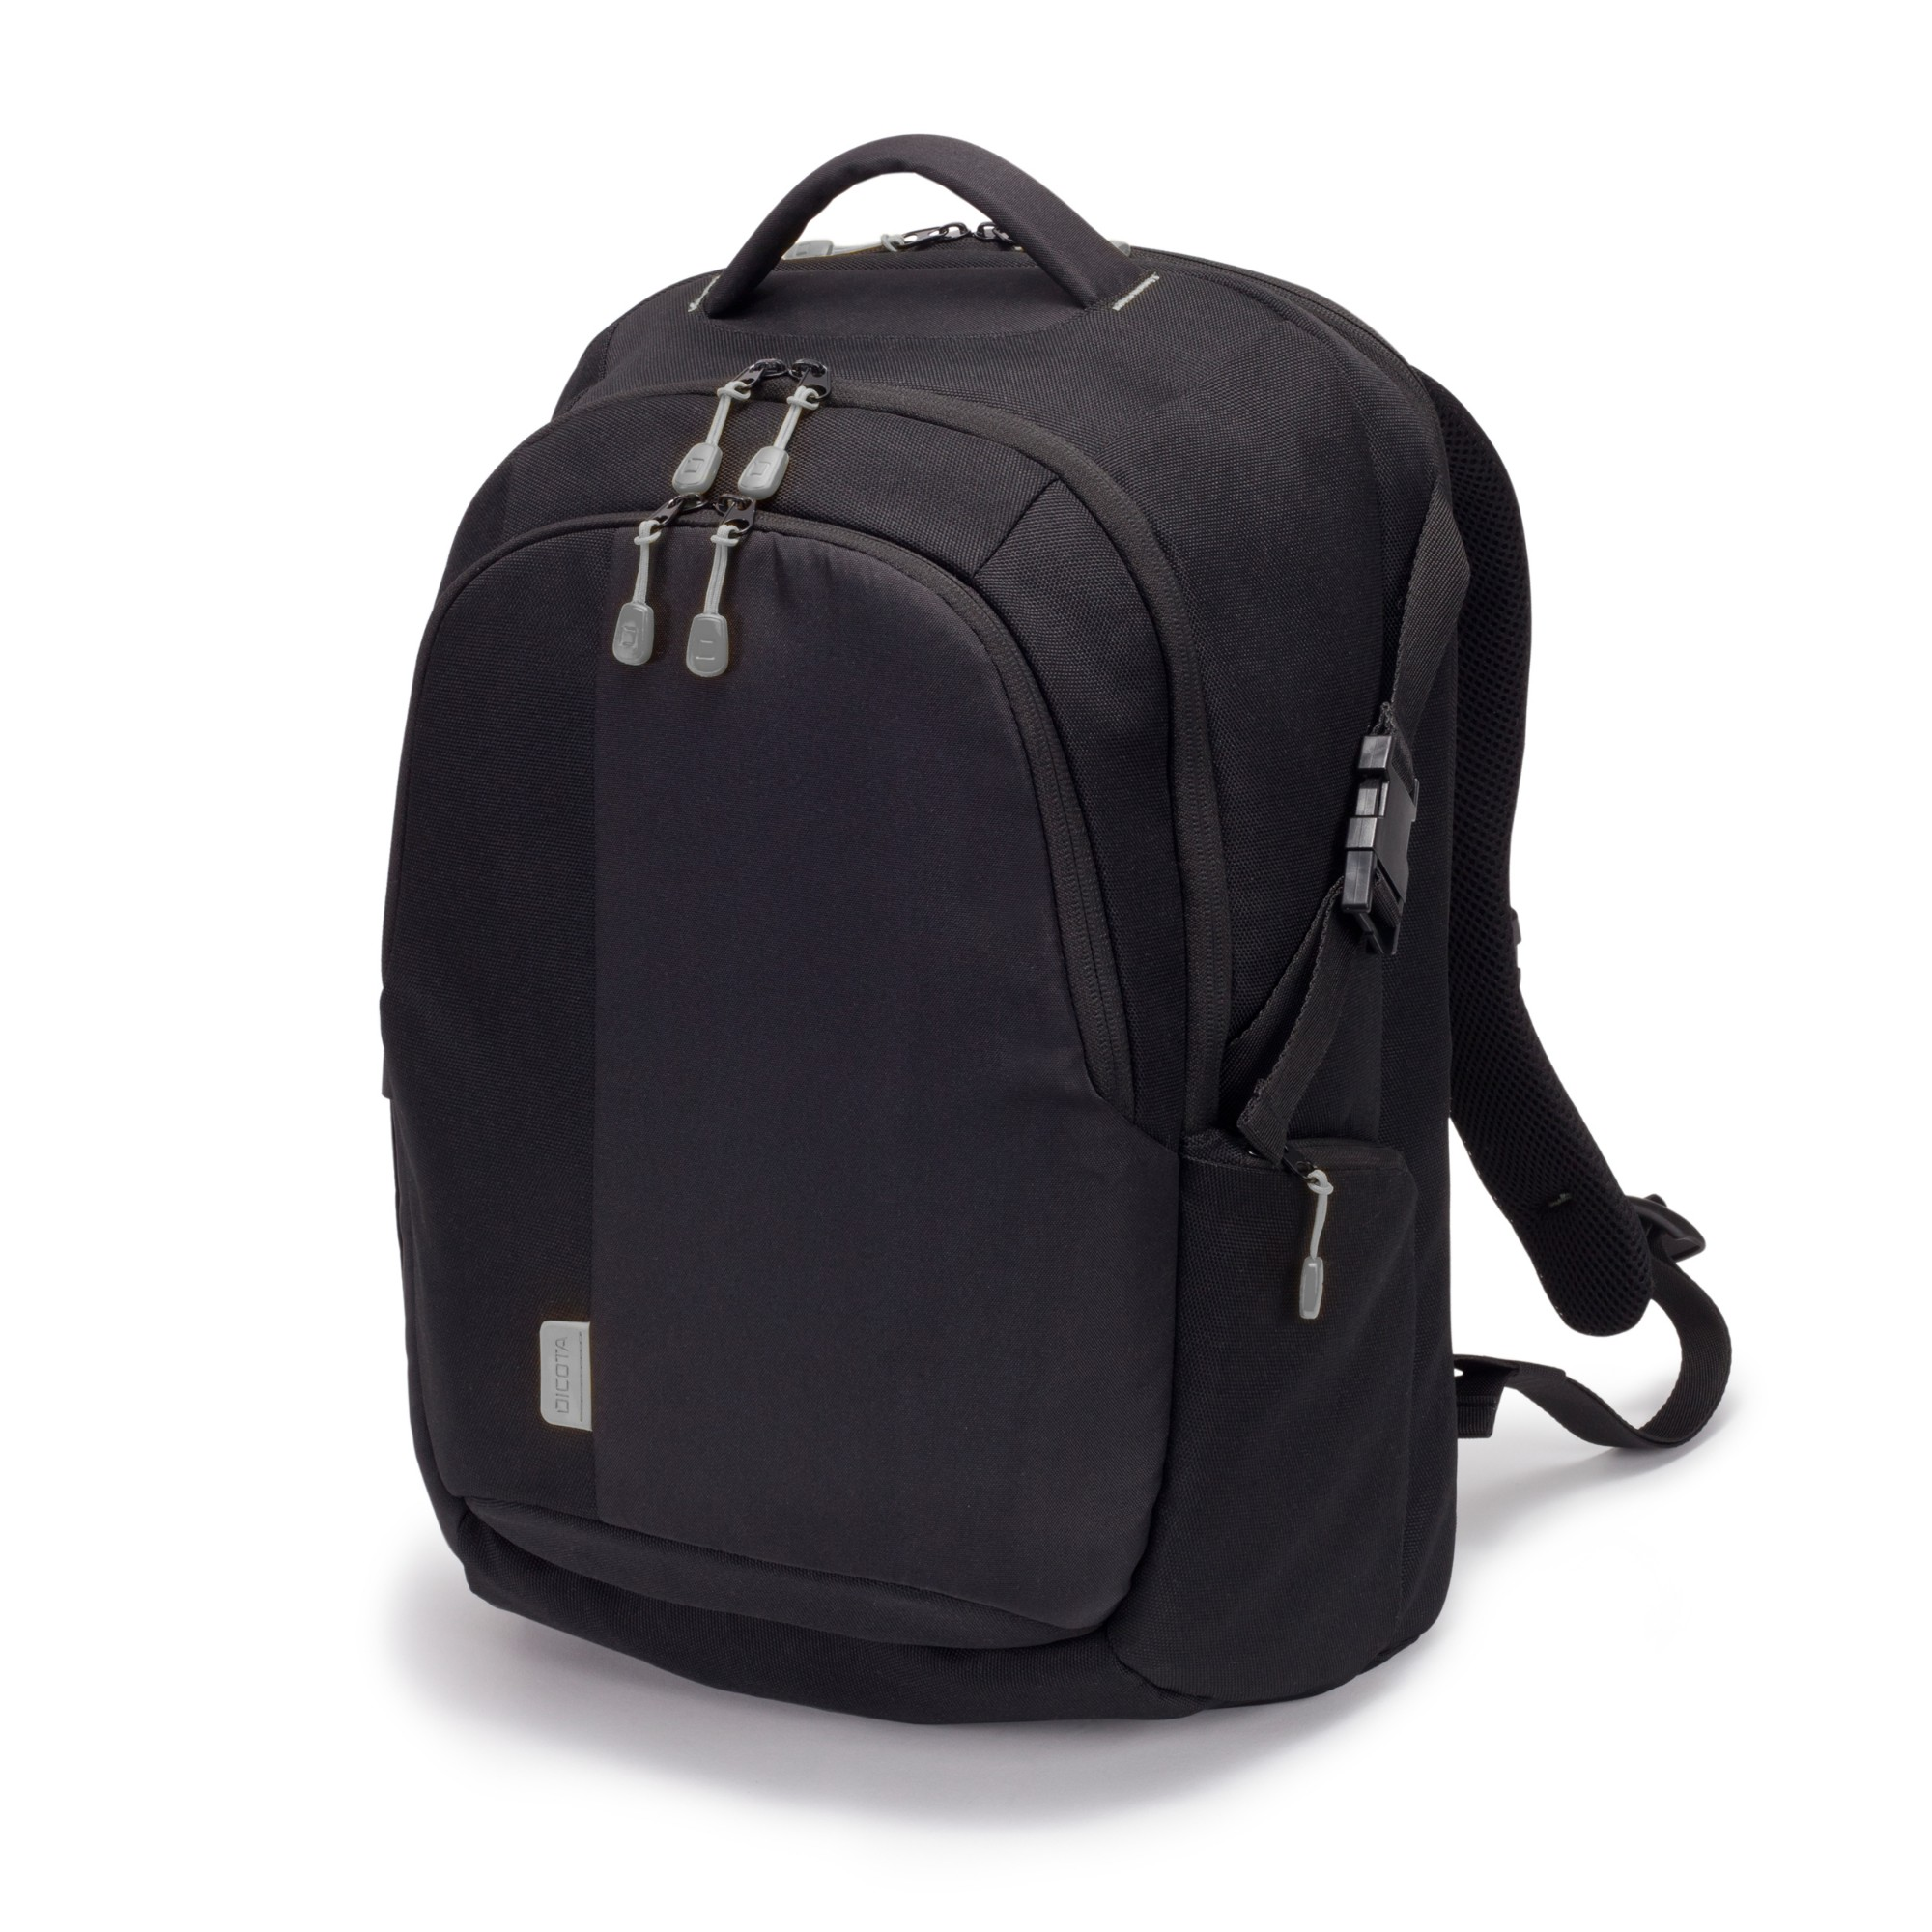 Backpack Eco - 14-15.6in Notebook Backpack - Black / Recycled Pet